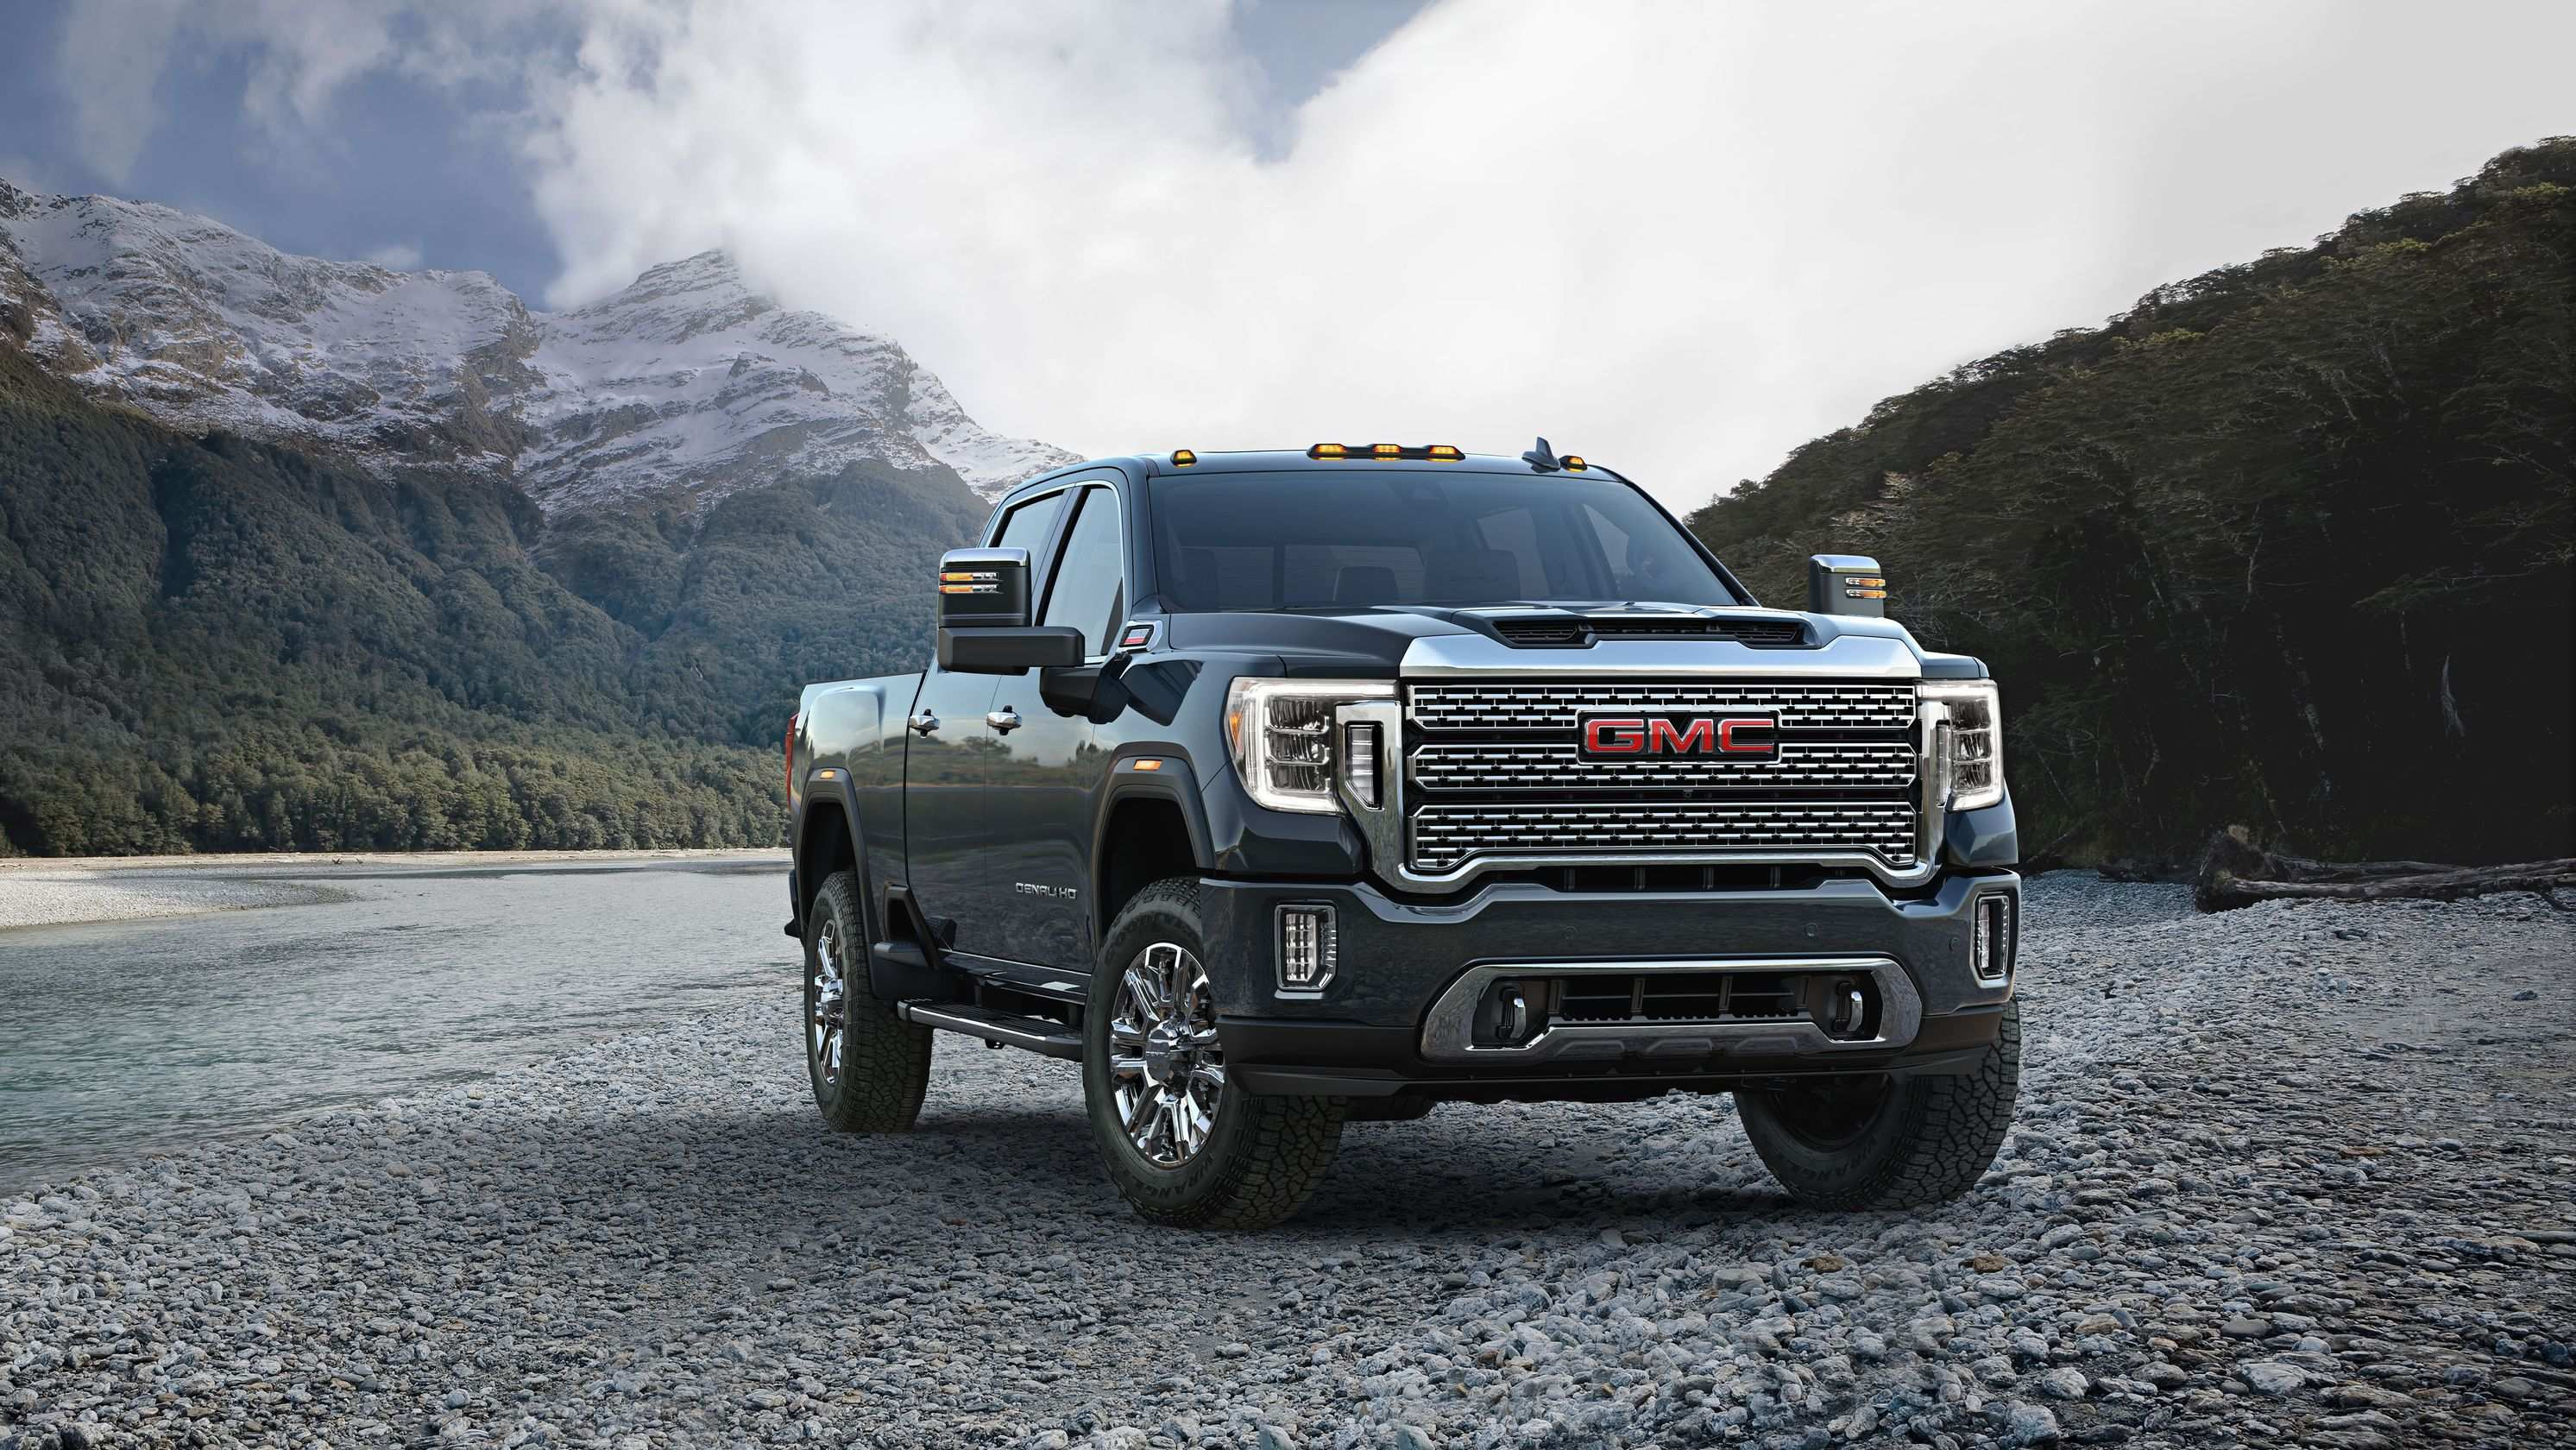 53 All New 2020 Gmc Pickup Reviews by 2020 Gmc Pickup